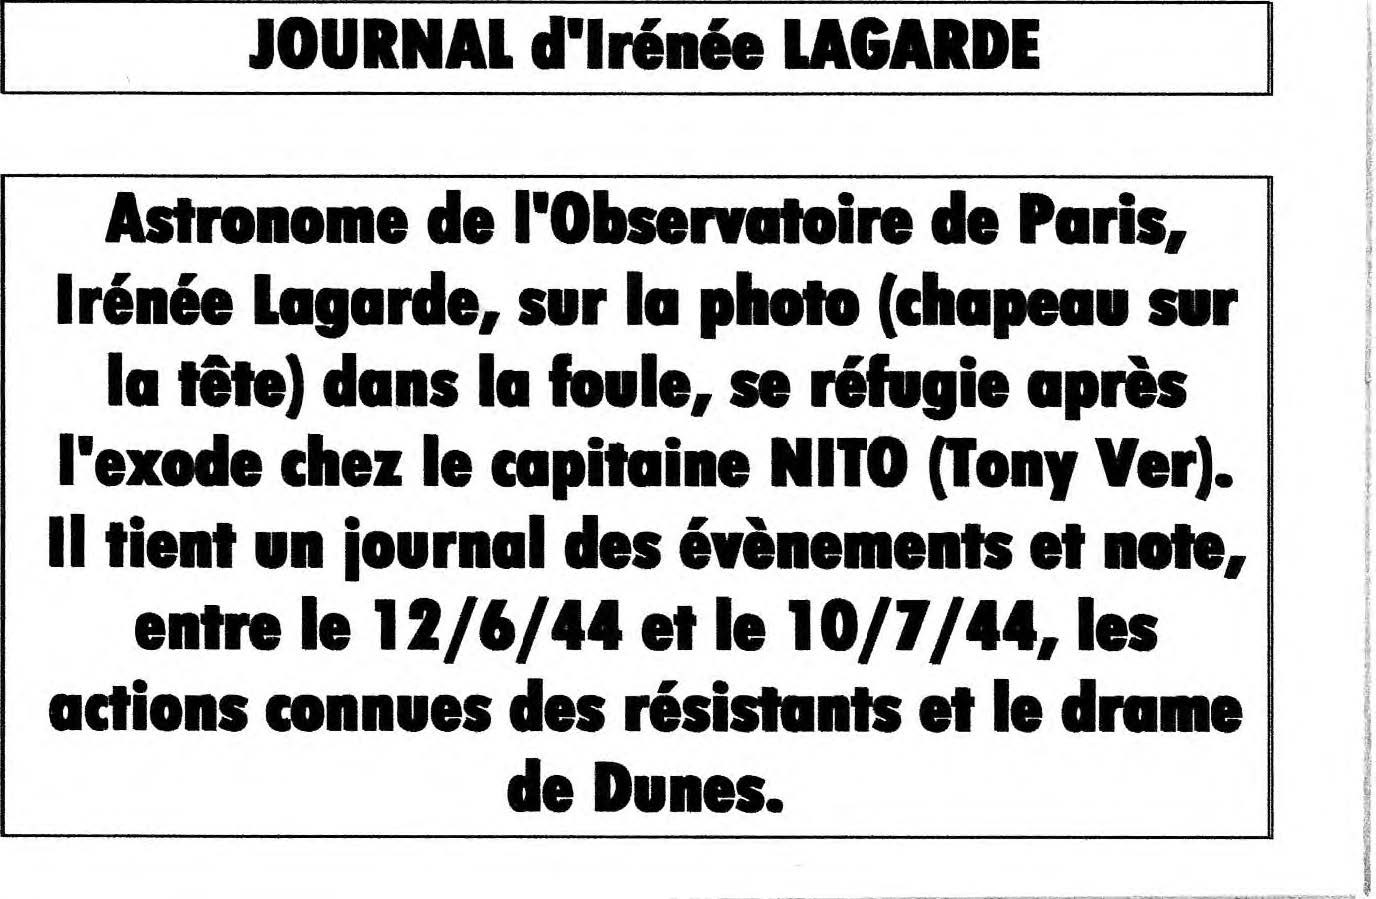 Journal d'Irénée LAGARDE